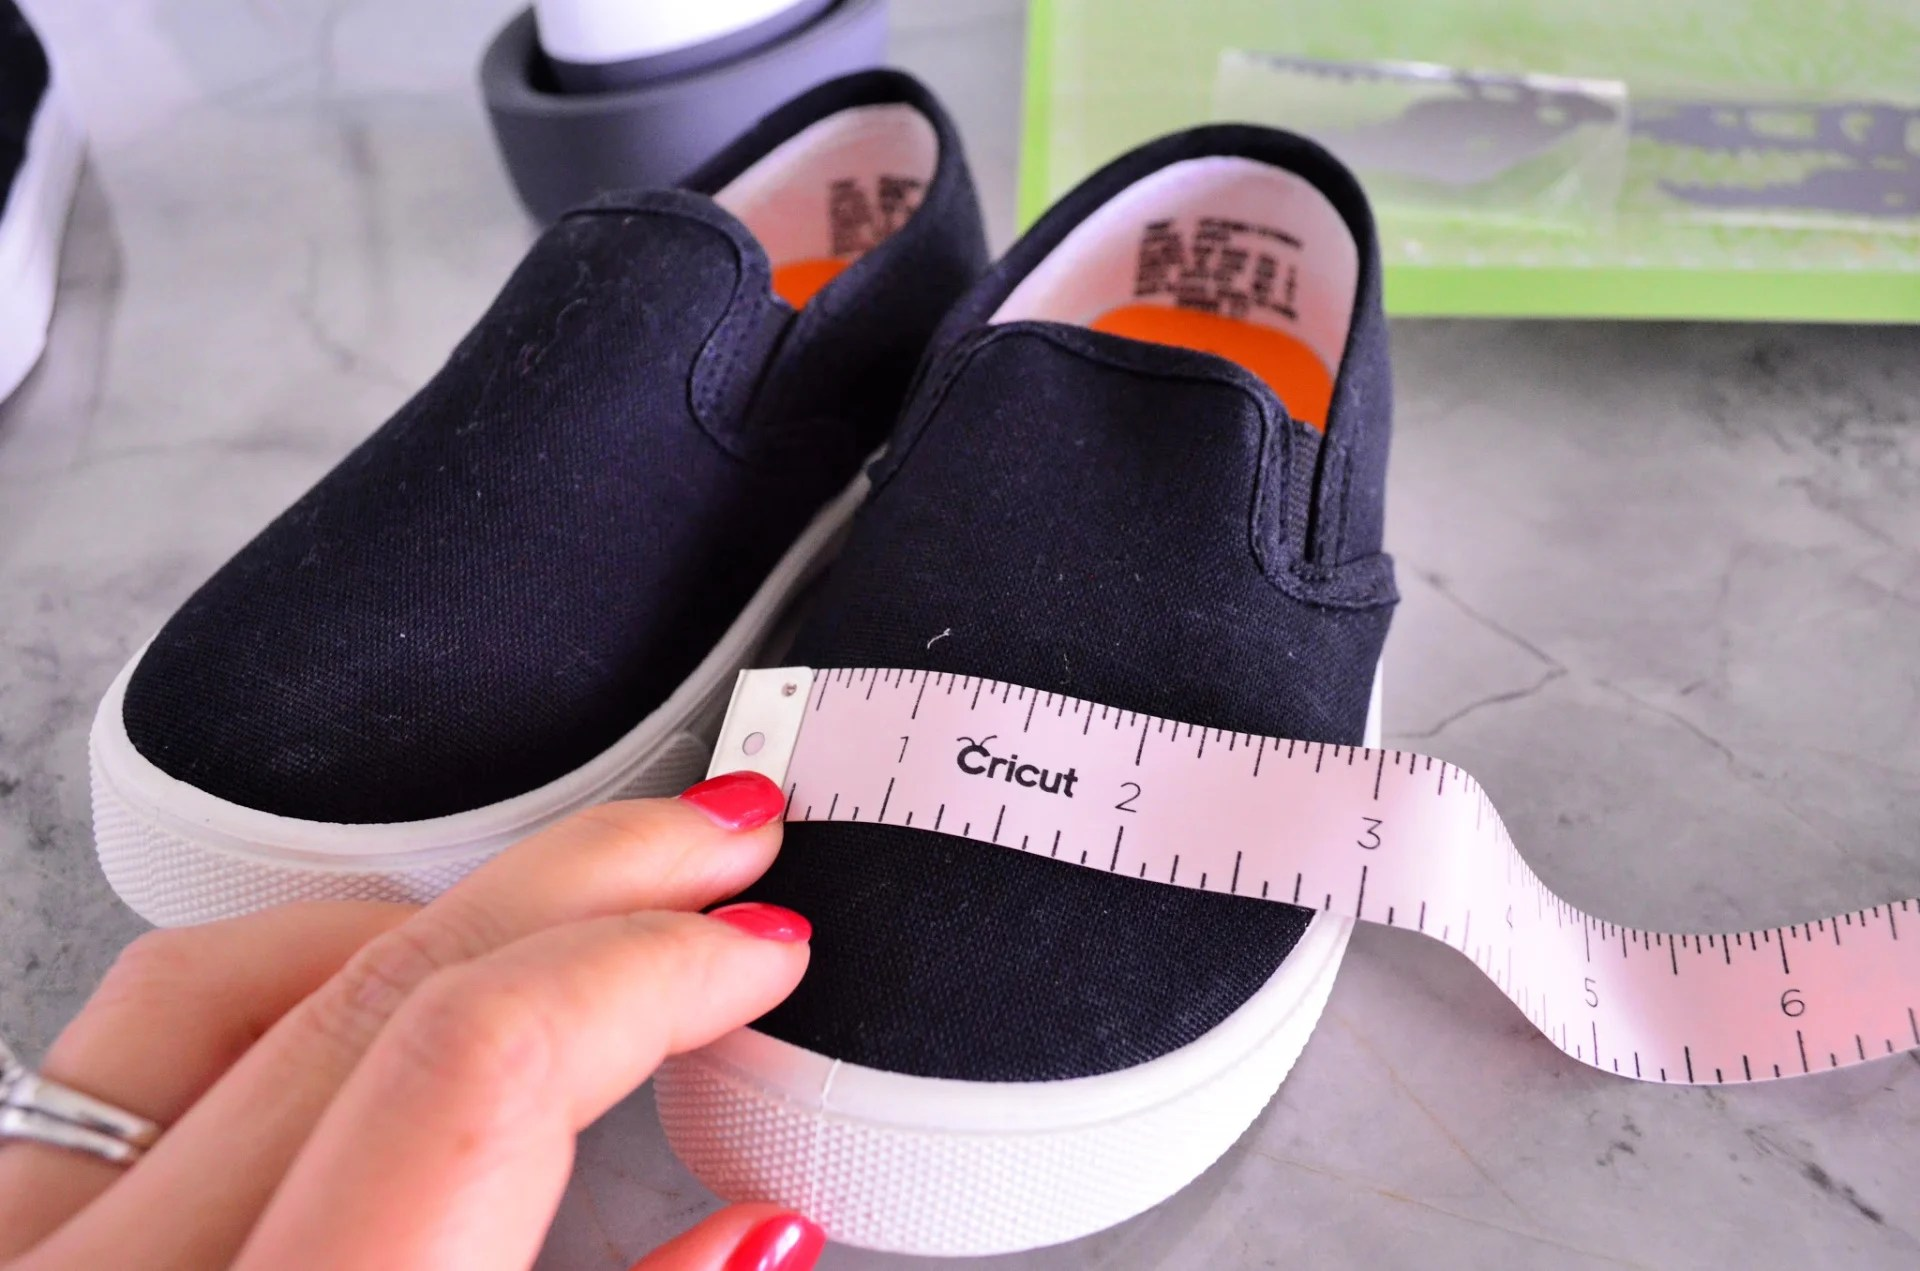 Measure shoes before customizing with Iron-On Vinyl